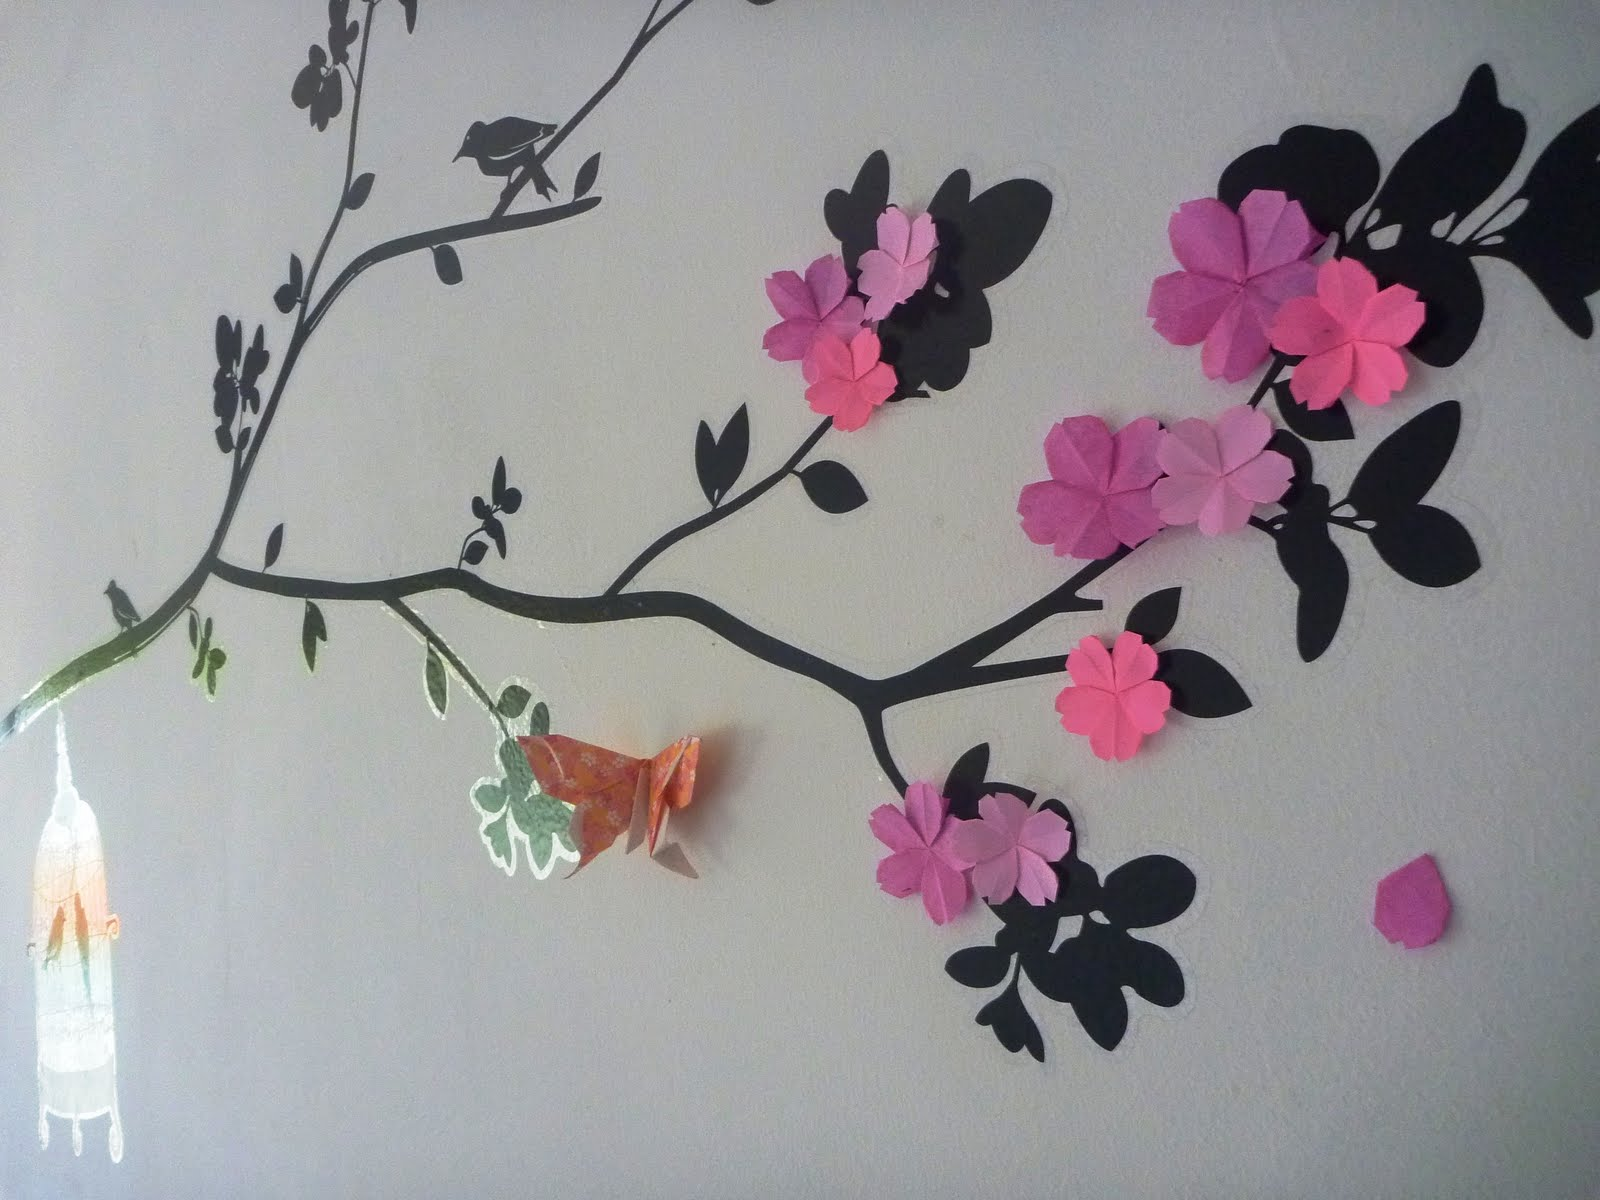 Origami Sakura Continuation I Tried My Very Best To Fill Up The Whole Tree On Wall With Sakuras However Only Managed Make A Few